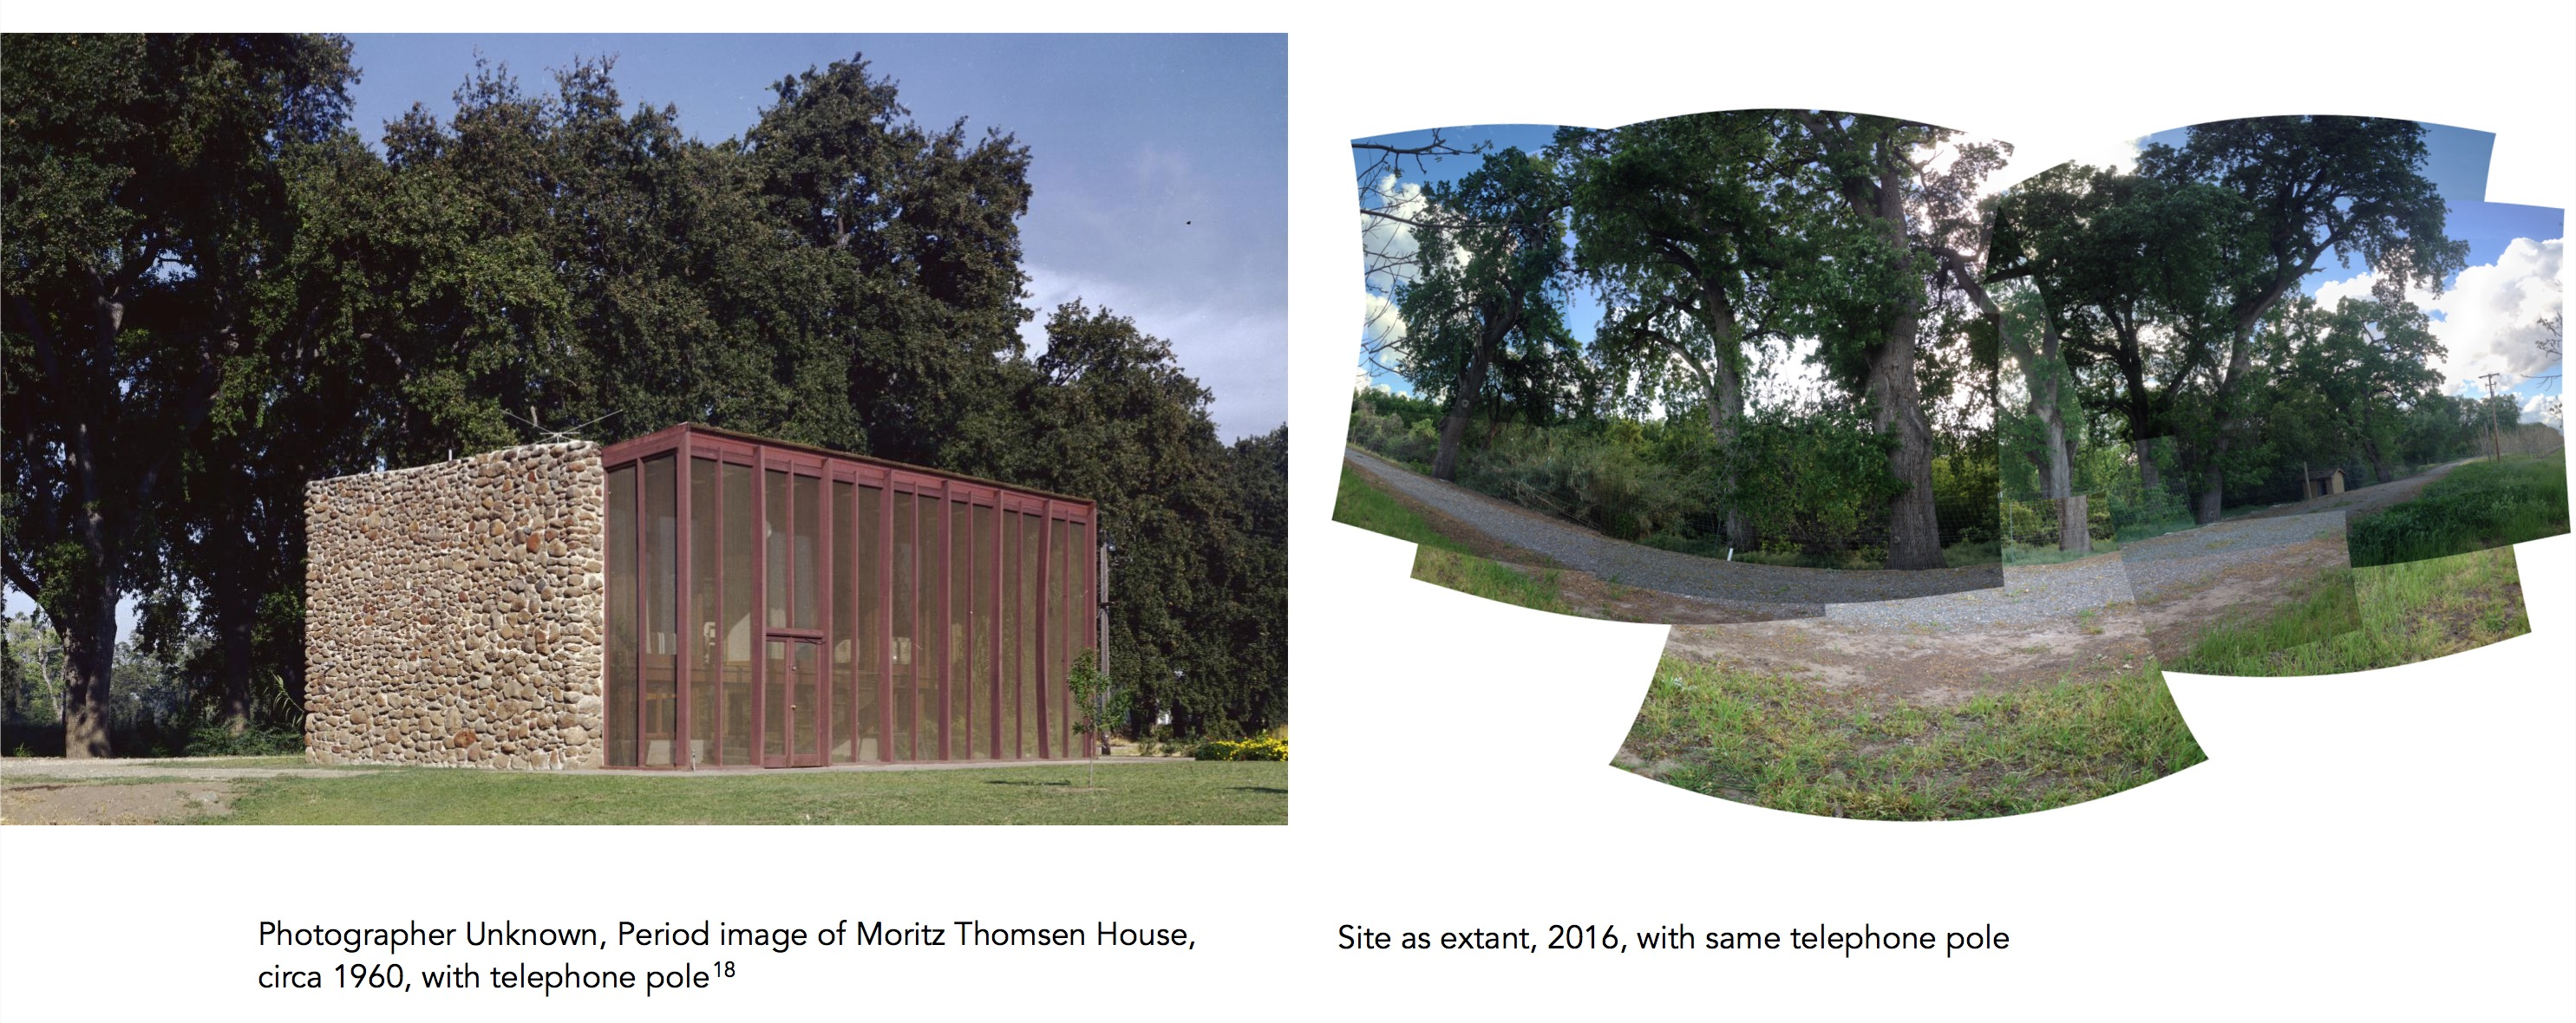 the moritz thomsen house before and after photographs